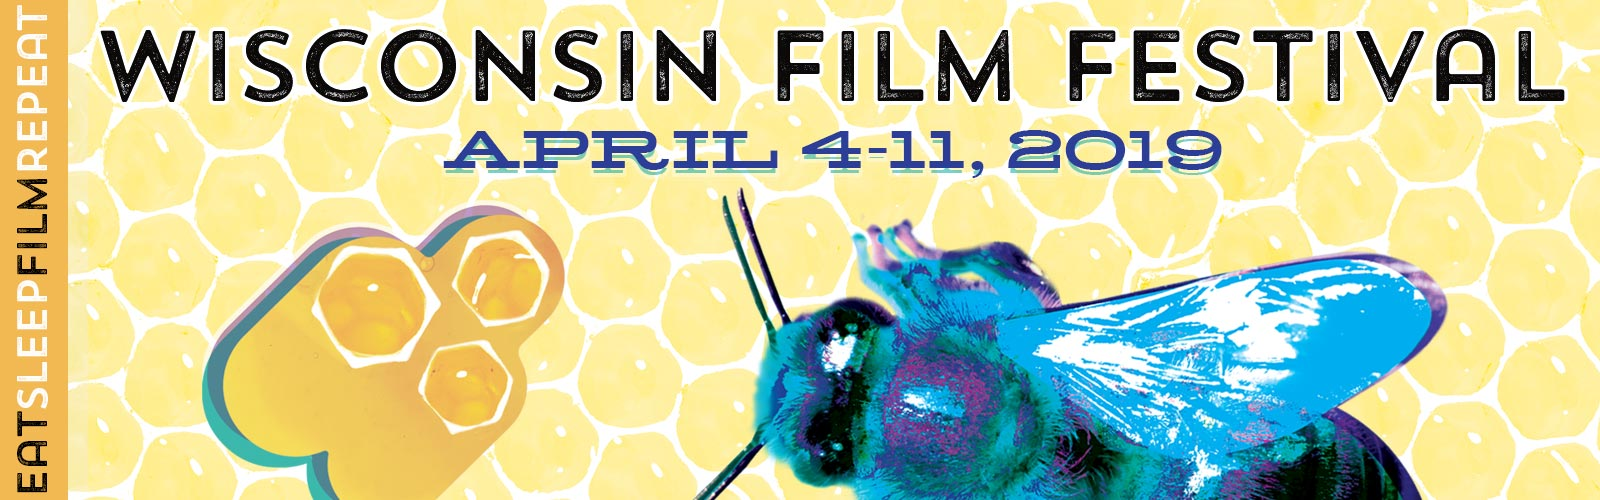 Wisconsin Film Festival April 4-11, 2019. Eat Sleep Film Repeat